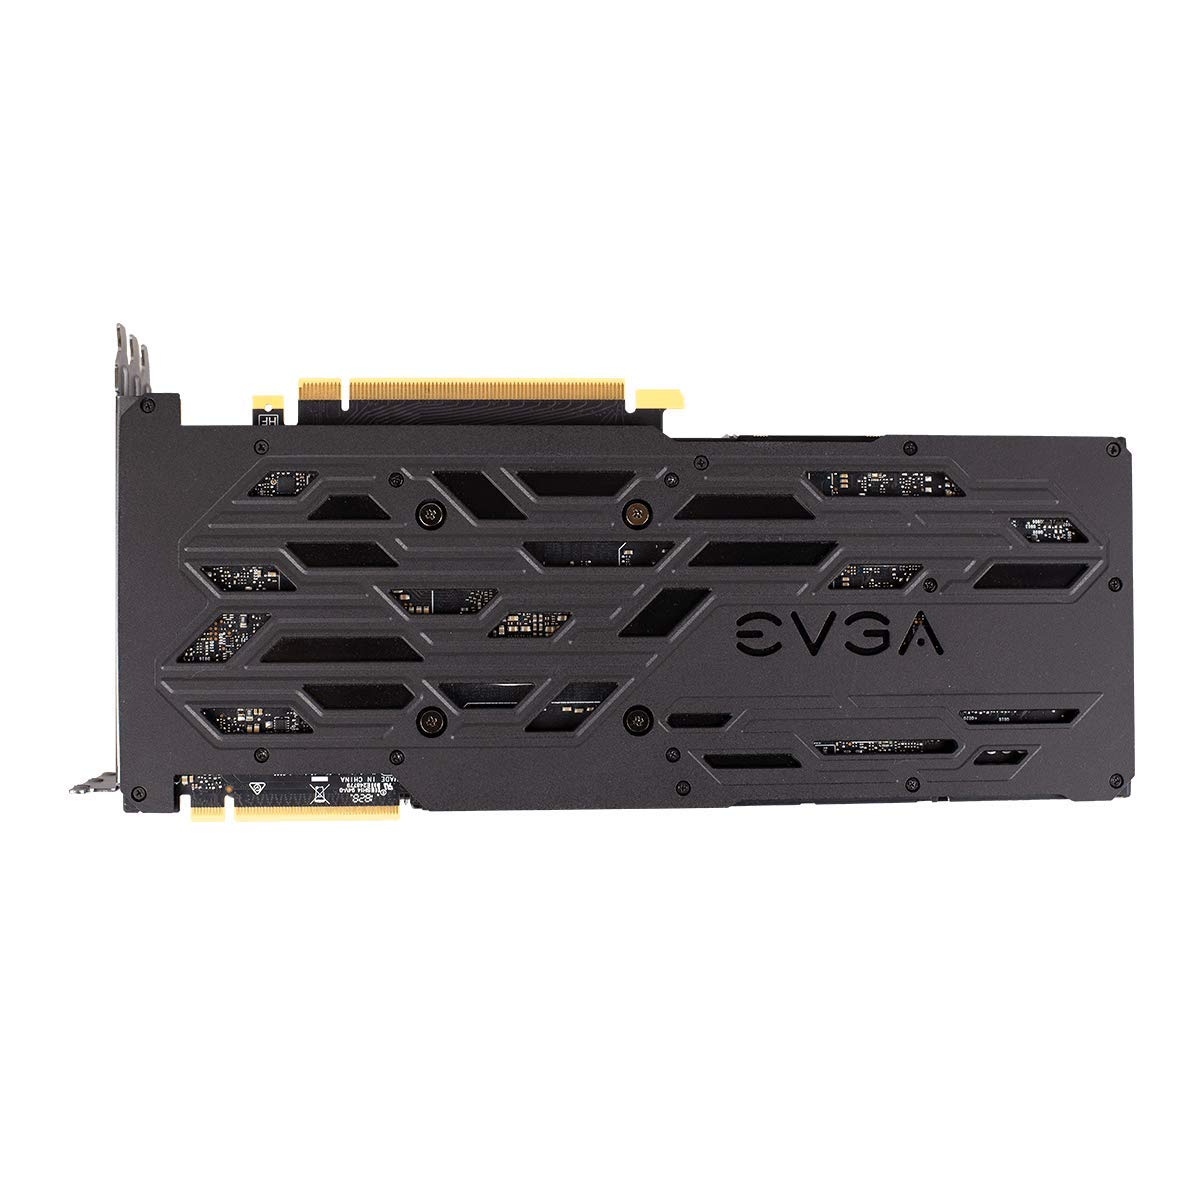 EVGA GeForce RTX 2080 XC ULTRA GAMING, 8GB GDDR6, Dual HDB Fans & RGB LED Graphics Card 08G-P4-2183-KR by EVGA (Image #7)